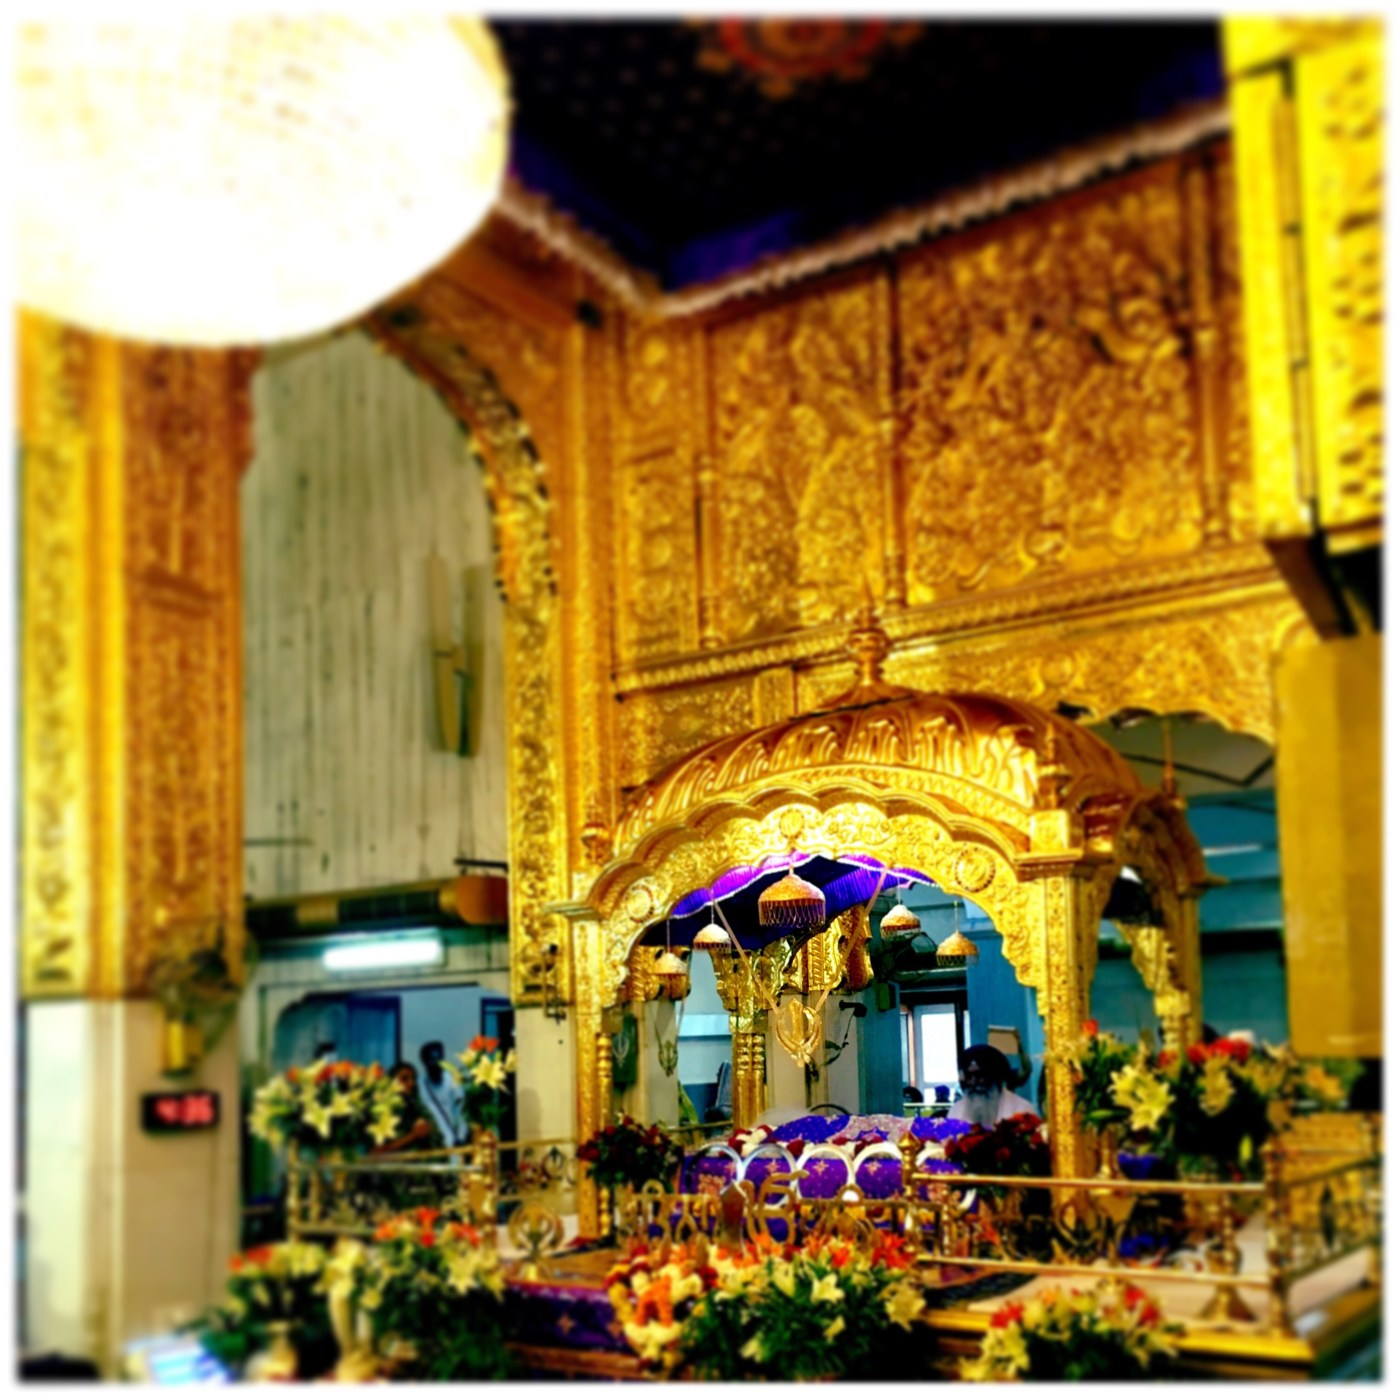 Interiors of the Gurudwara Bangla Sahib, Delhi, India || Places to see in Delhi, India || Things to do in Delhi, India || Travelling || Travel